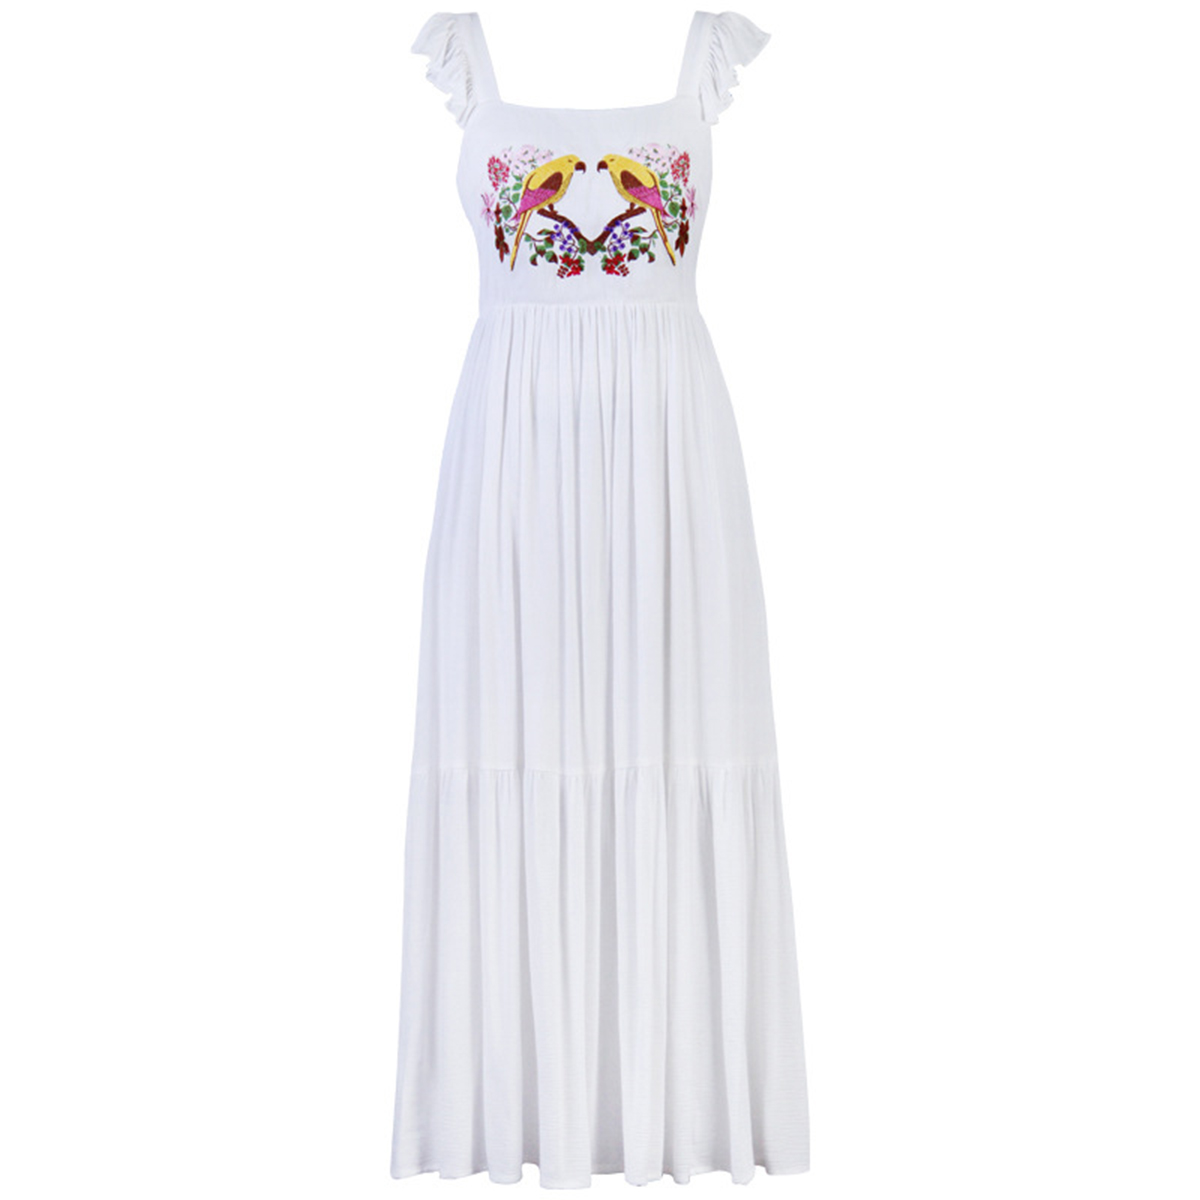 Parrot Embroidered Maxi Dress Ruffle Sleeve Straps Summer Dresses Square Neck